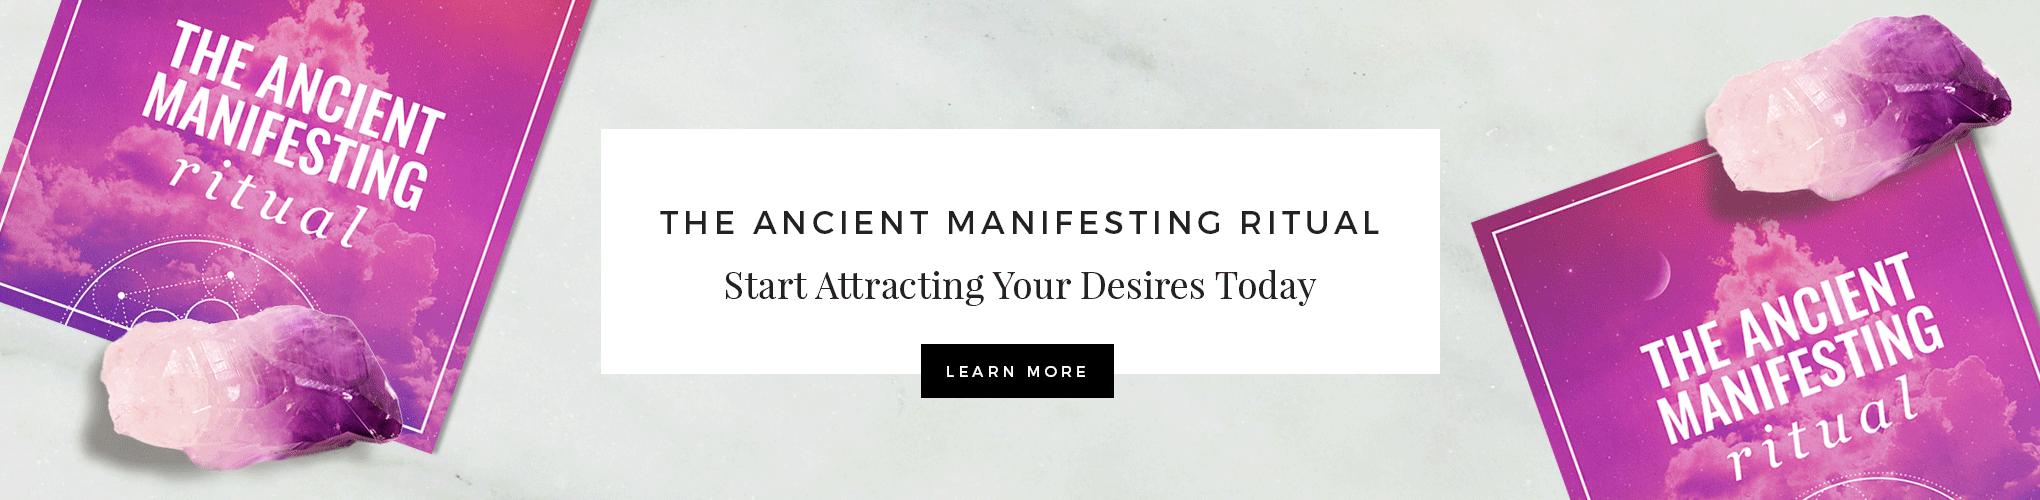 7 Signs Abundance is Manifesting For You | SARAH PROUT